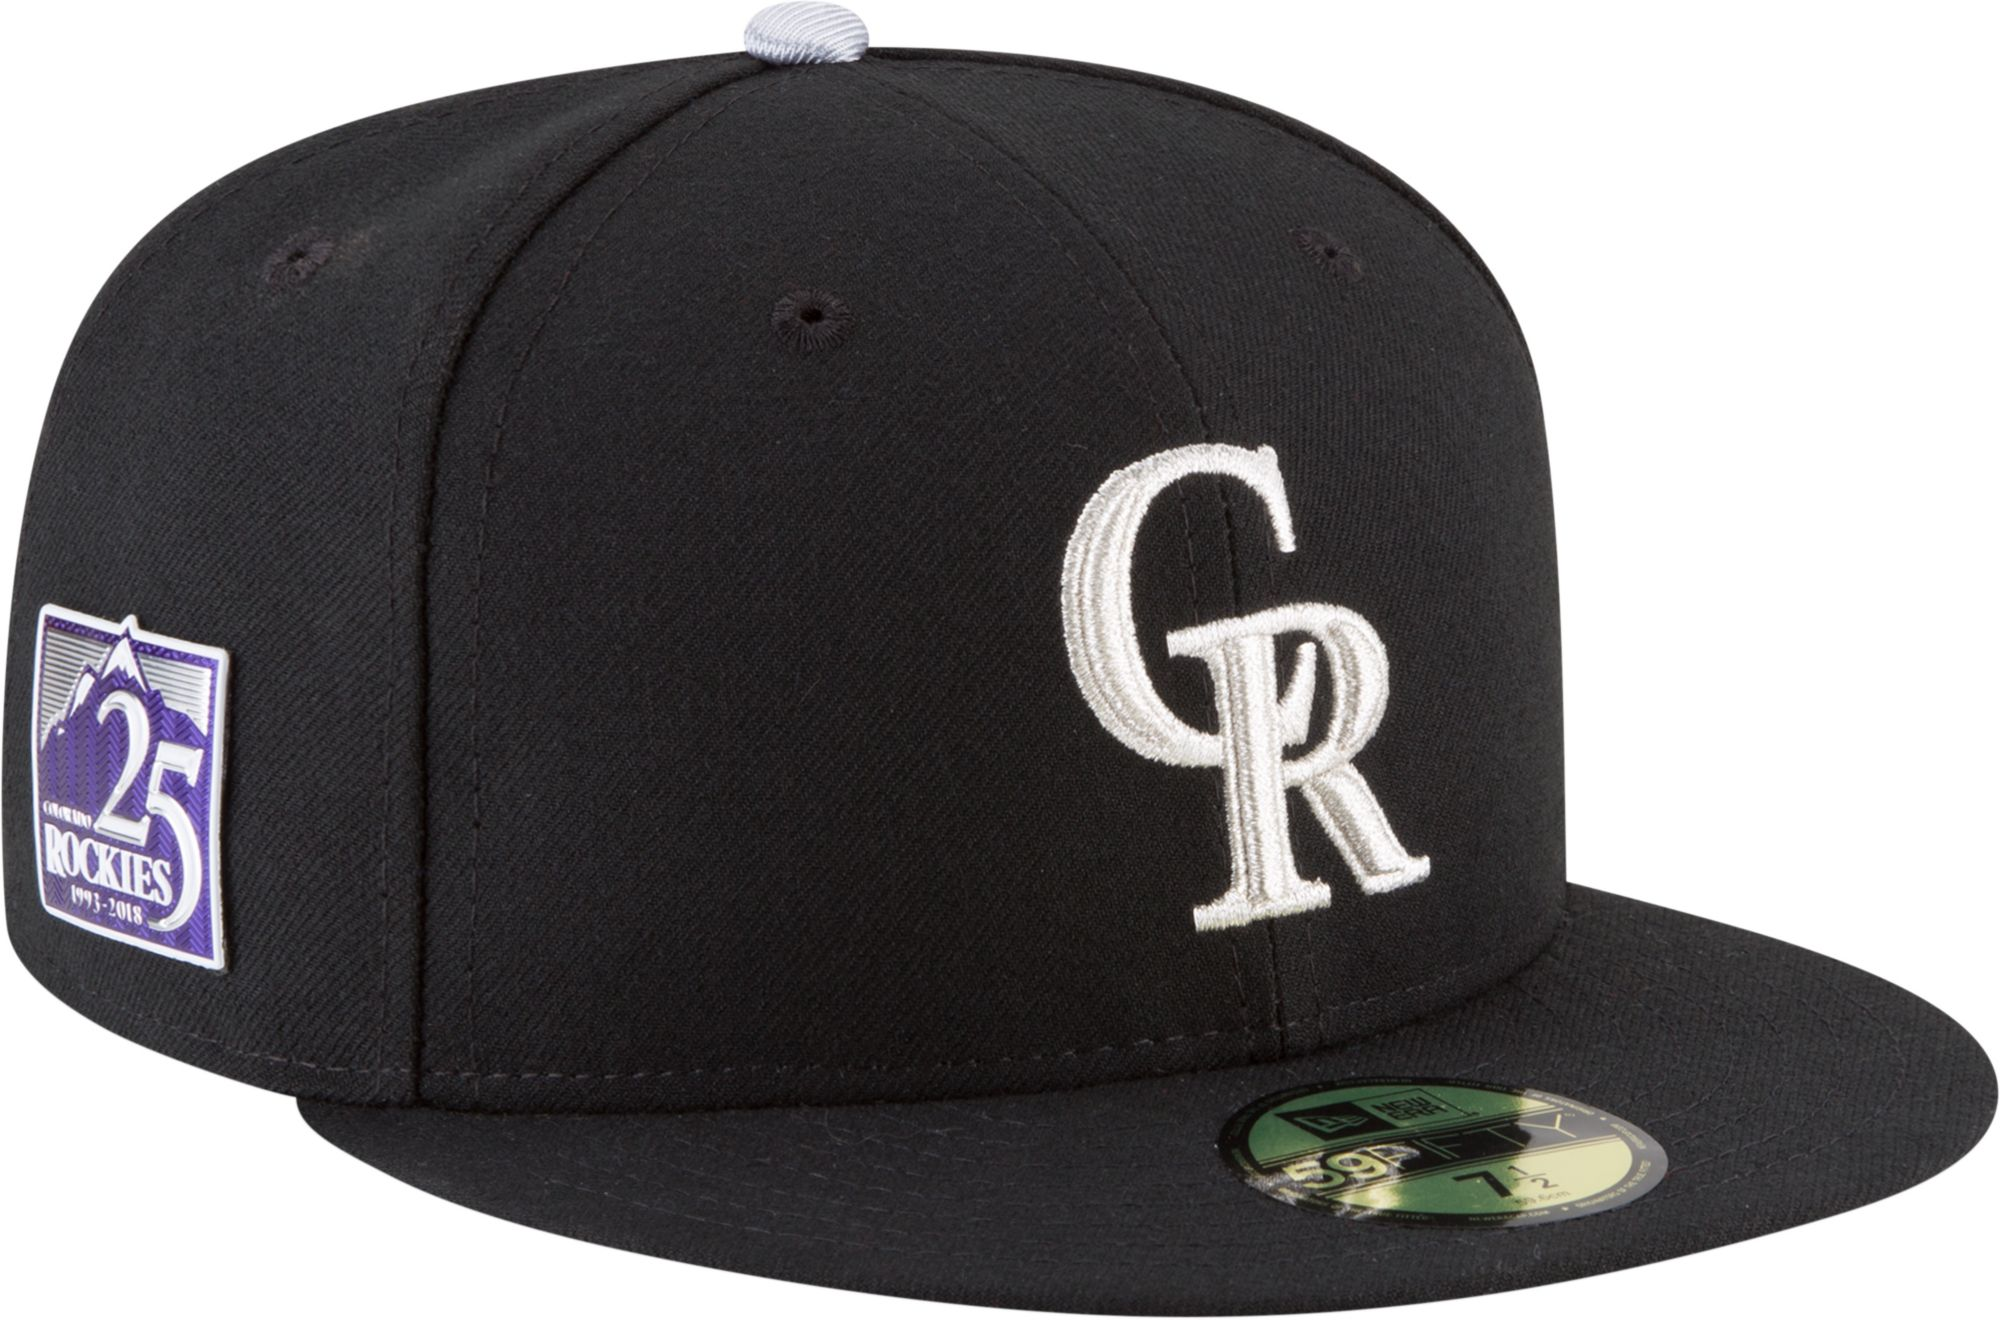 3d9a92c8 get new era mens colorado rockies 59fifty black authentic hat w 25th  anniversary patch 49969 fbd6f